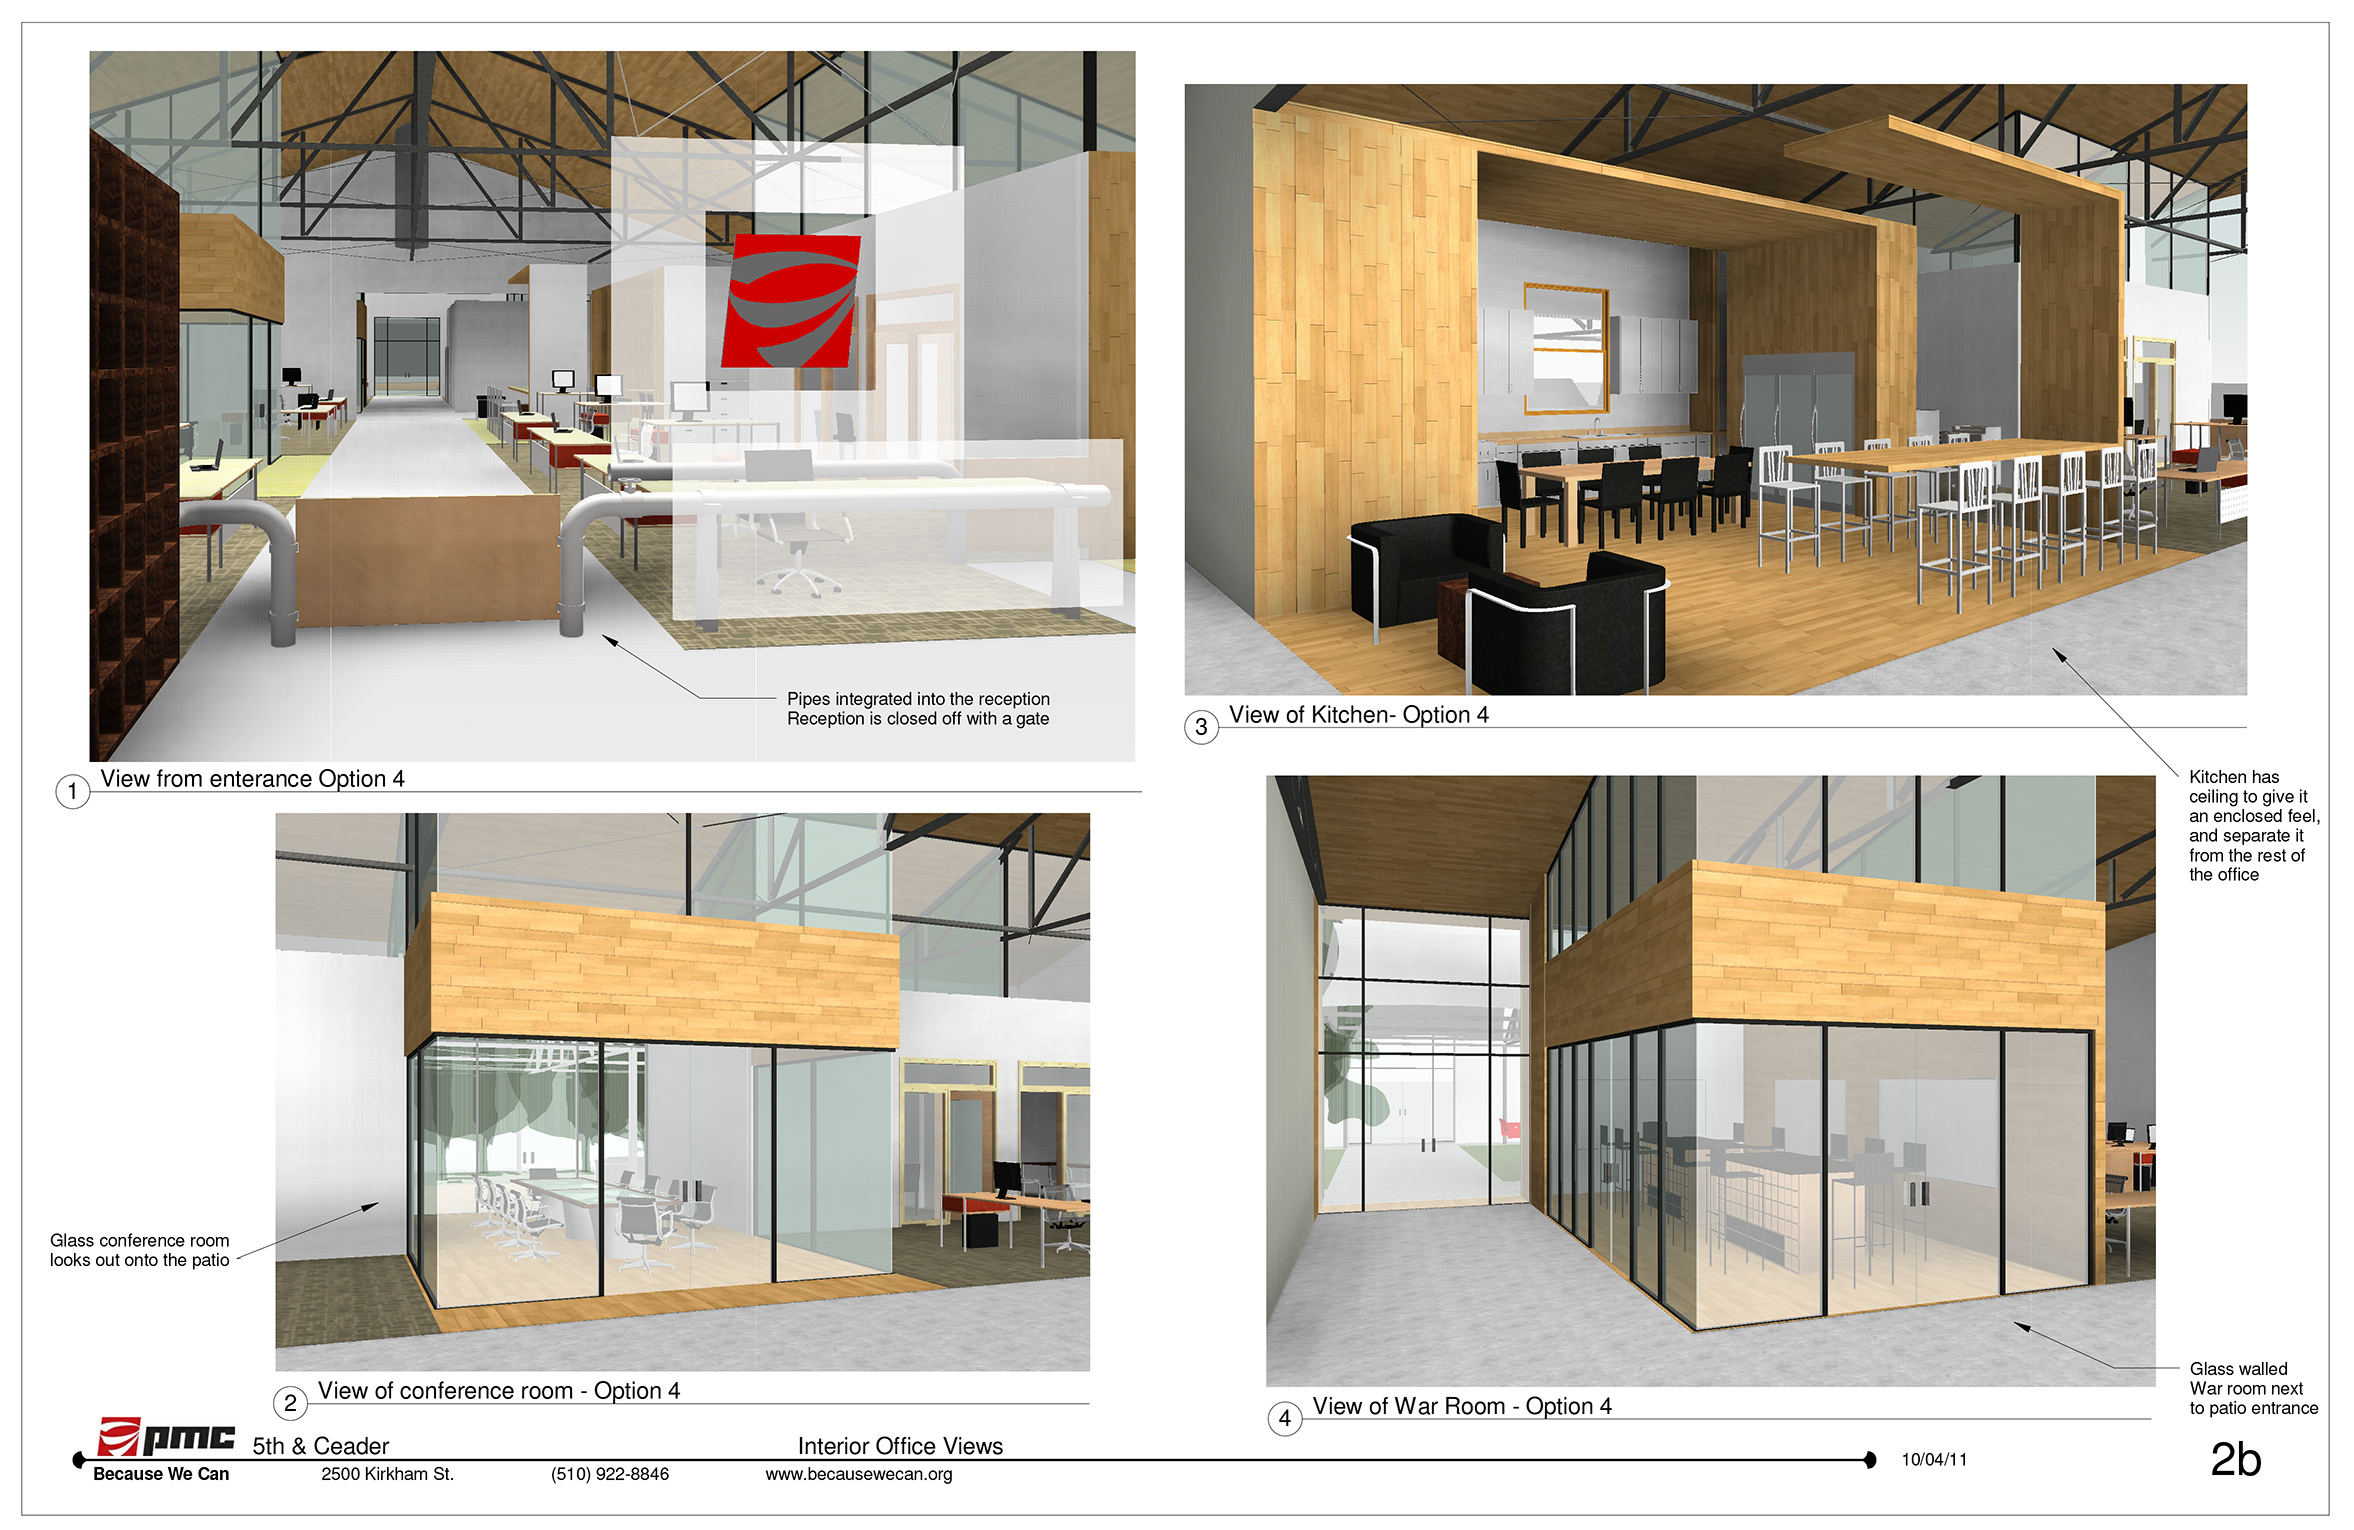 These interior office views show various collaborative work areas. A small, tight knit team operates this company. The need to have many kinds of meeting areas with and without clients is addressed in this layout.